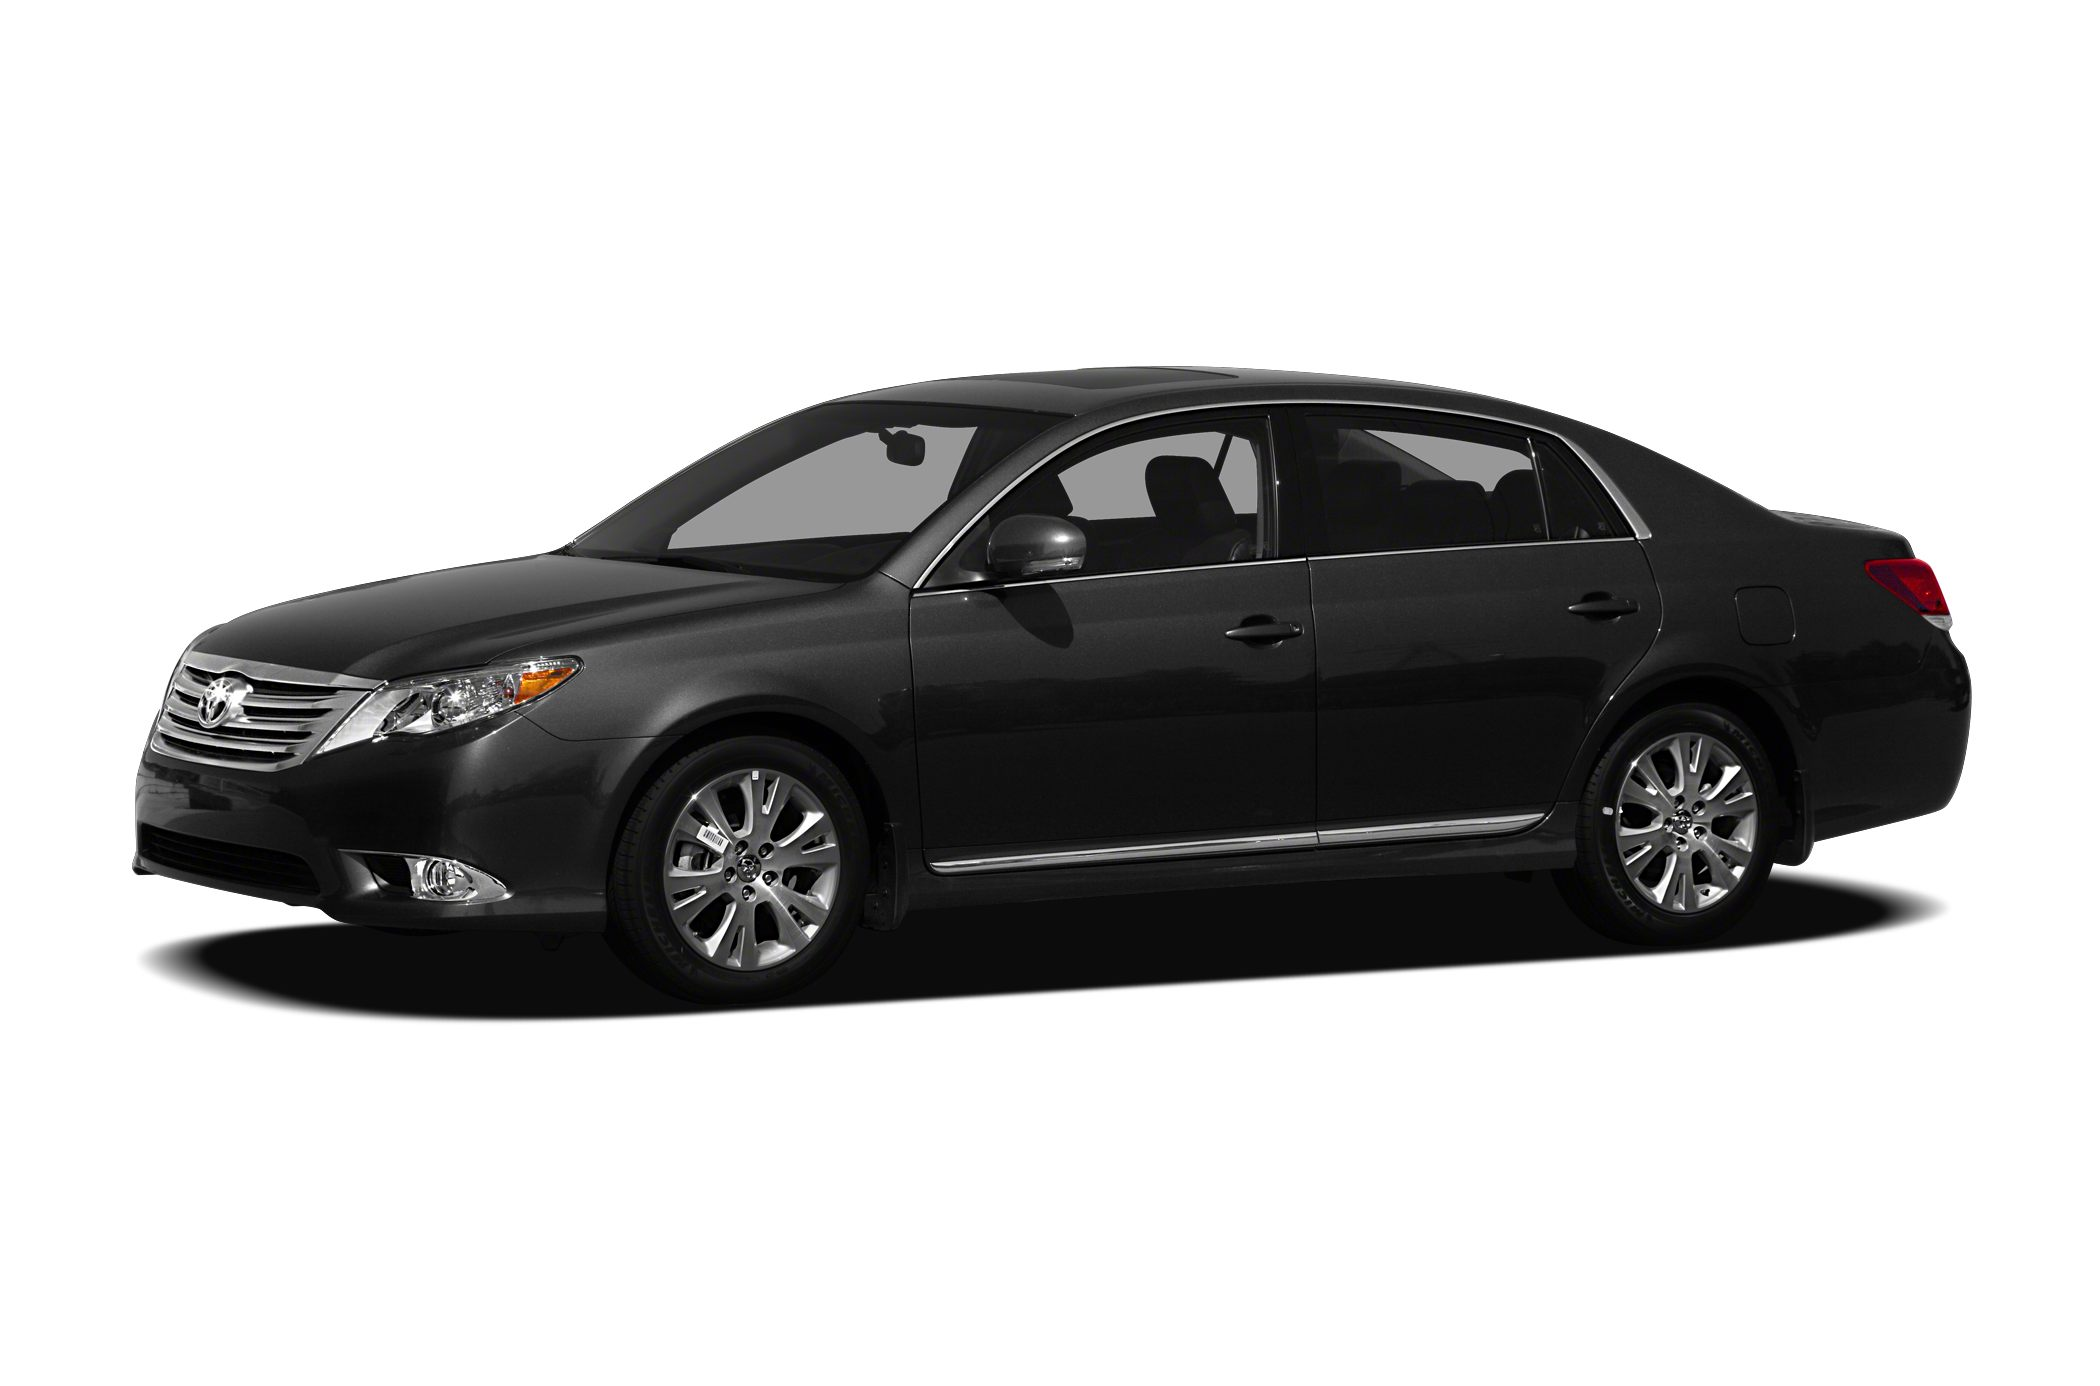 2011 Toyota Avalon Limited Sedan for sale in Murray for $22,900 with 38,512 miles